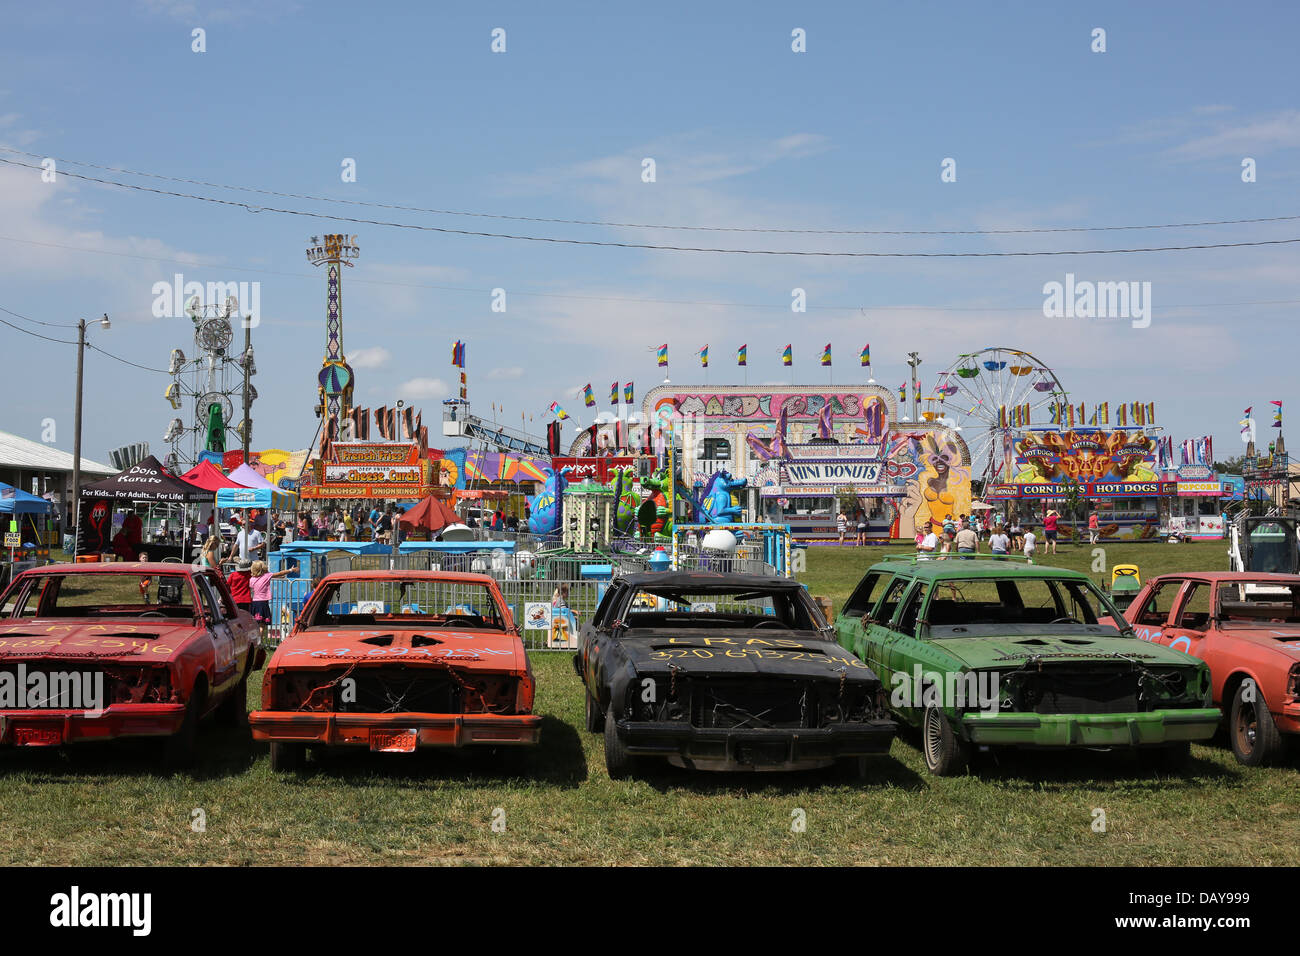 Demolition Derby Cars Lined Up At A County Fair Stock Photo - Derby cars